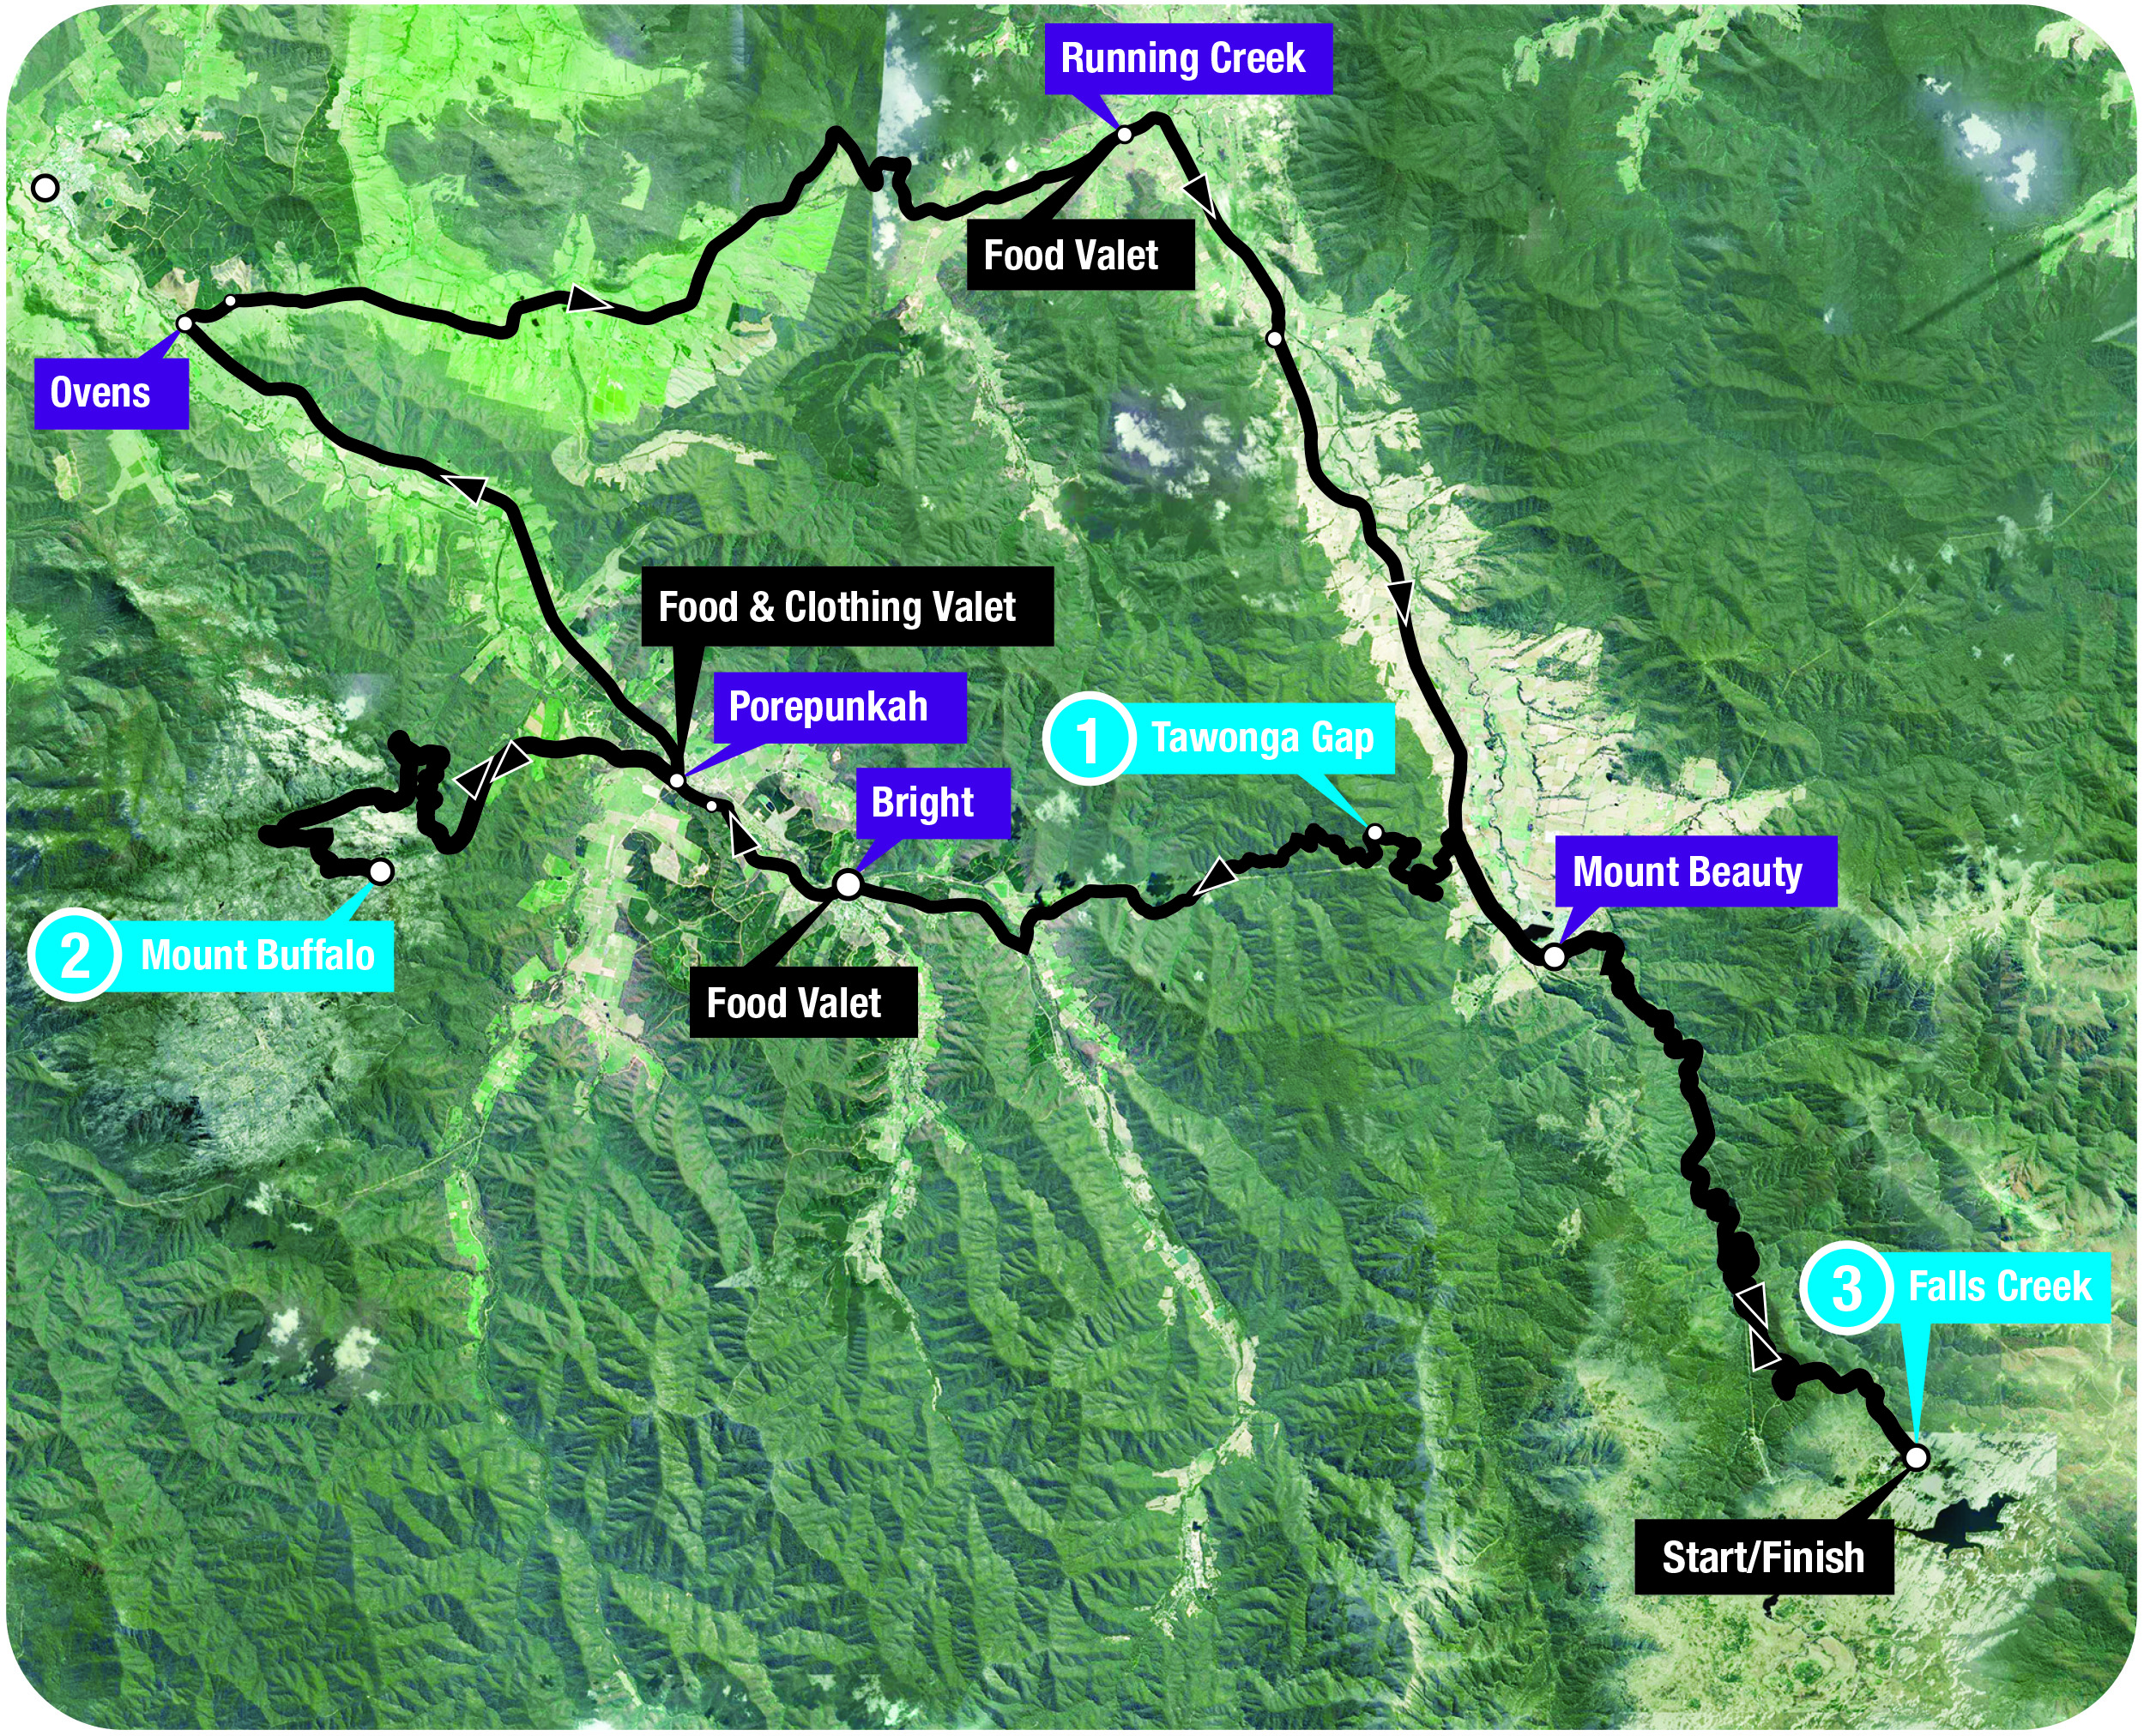 3 Peaks Ovens Vally route due to bushfires - still 235km and 4,000m+ vert and super hard.